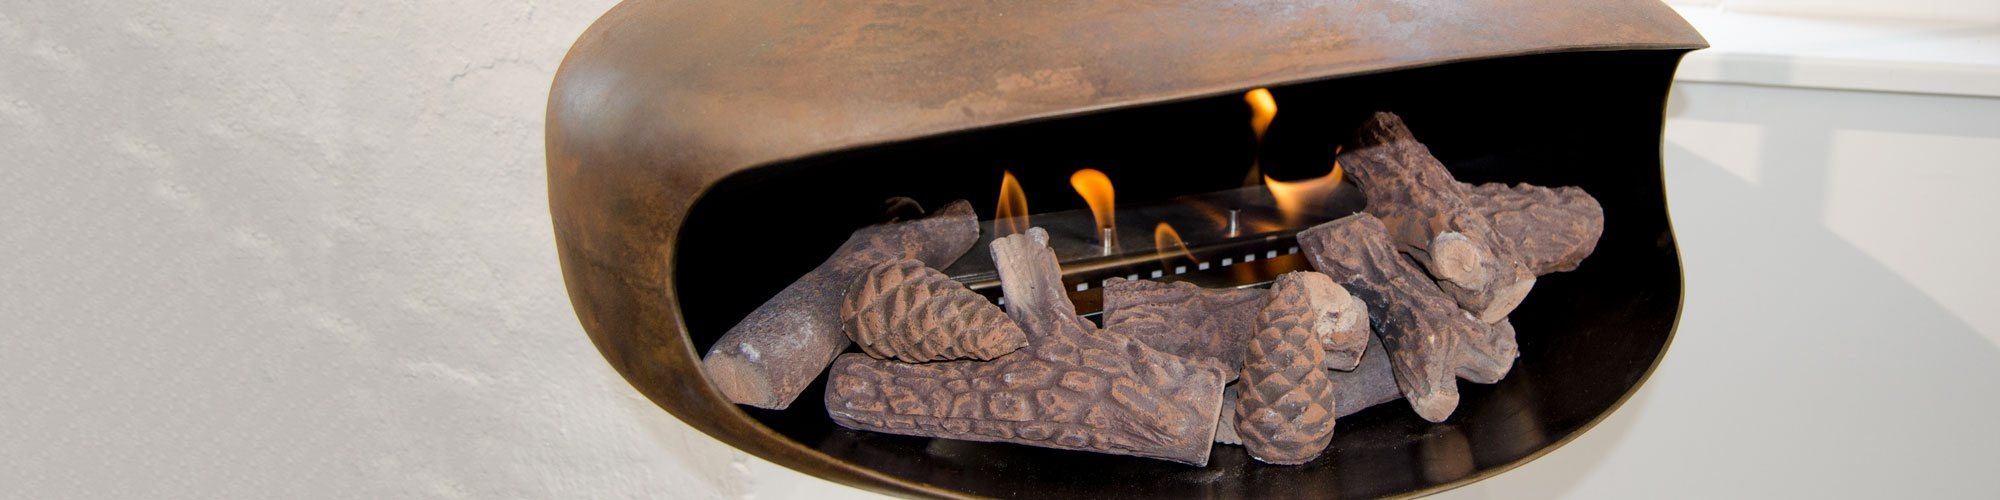 Bioethanol fireplace accessories